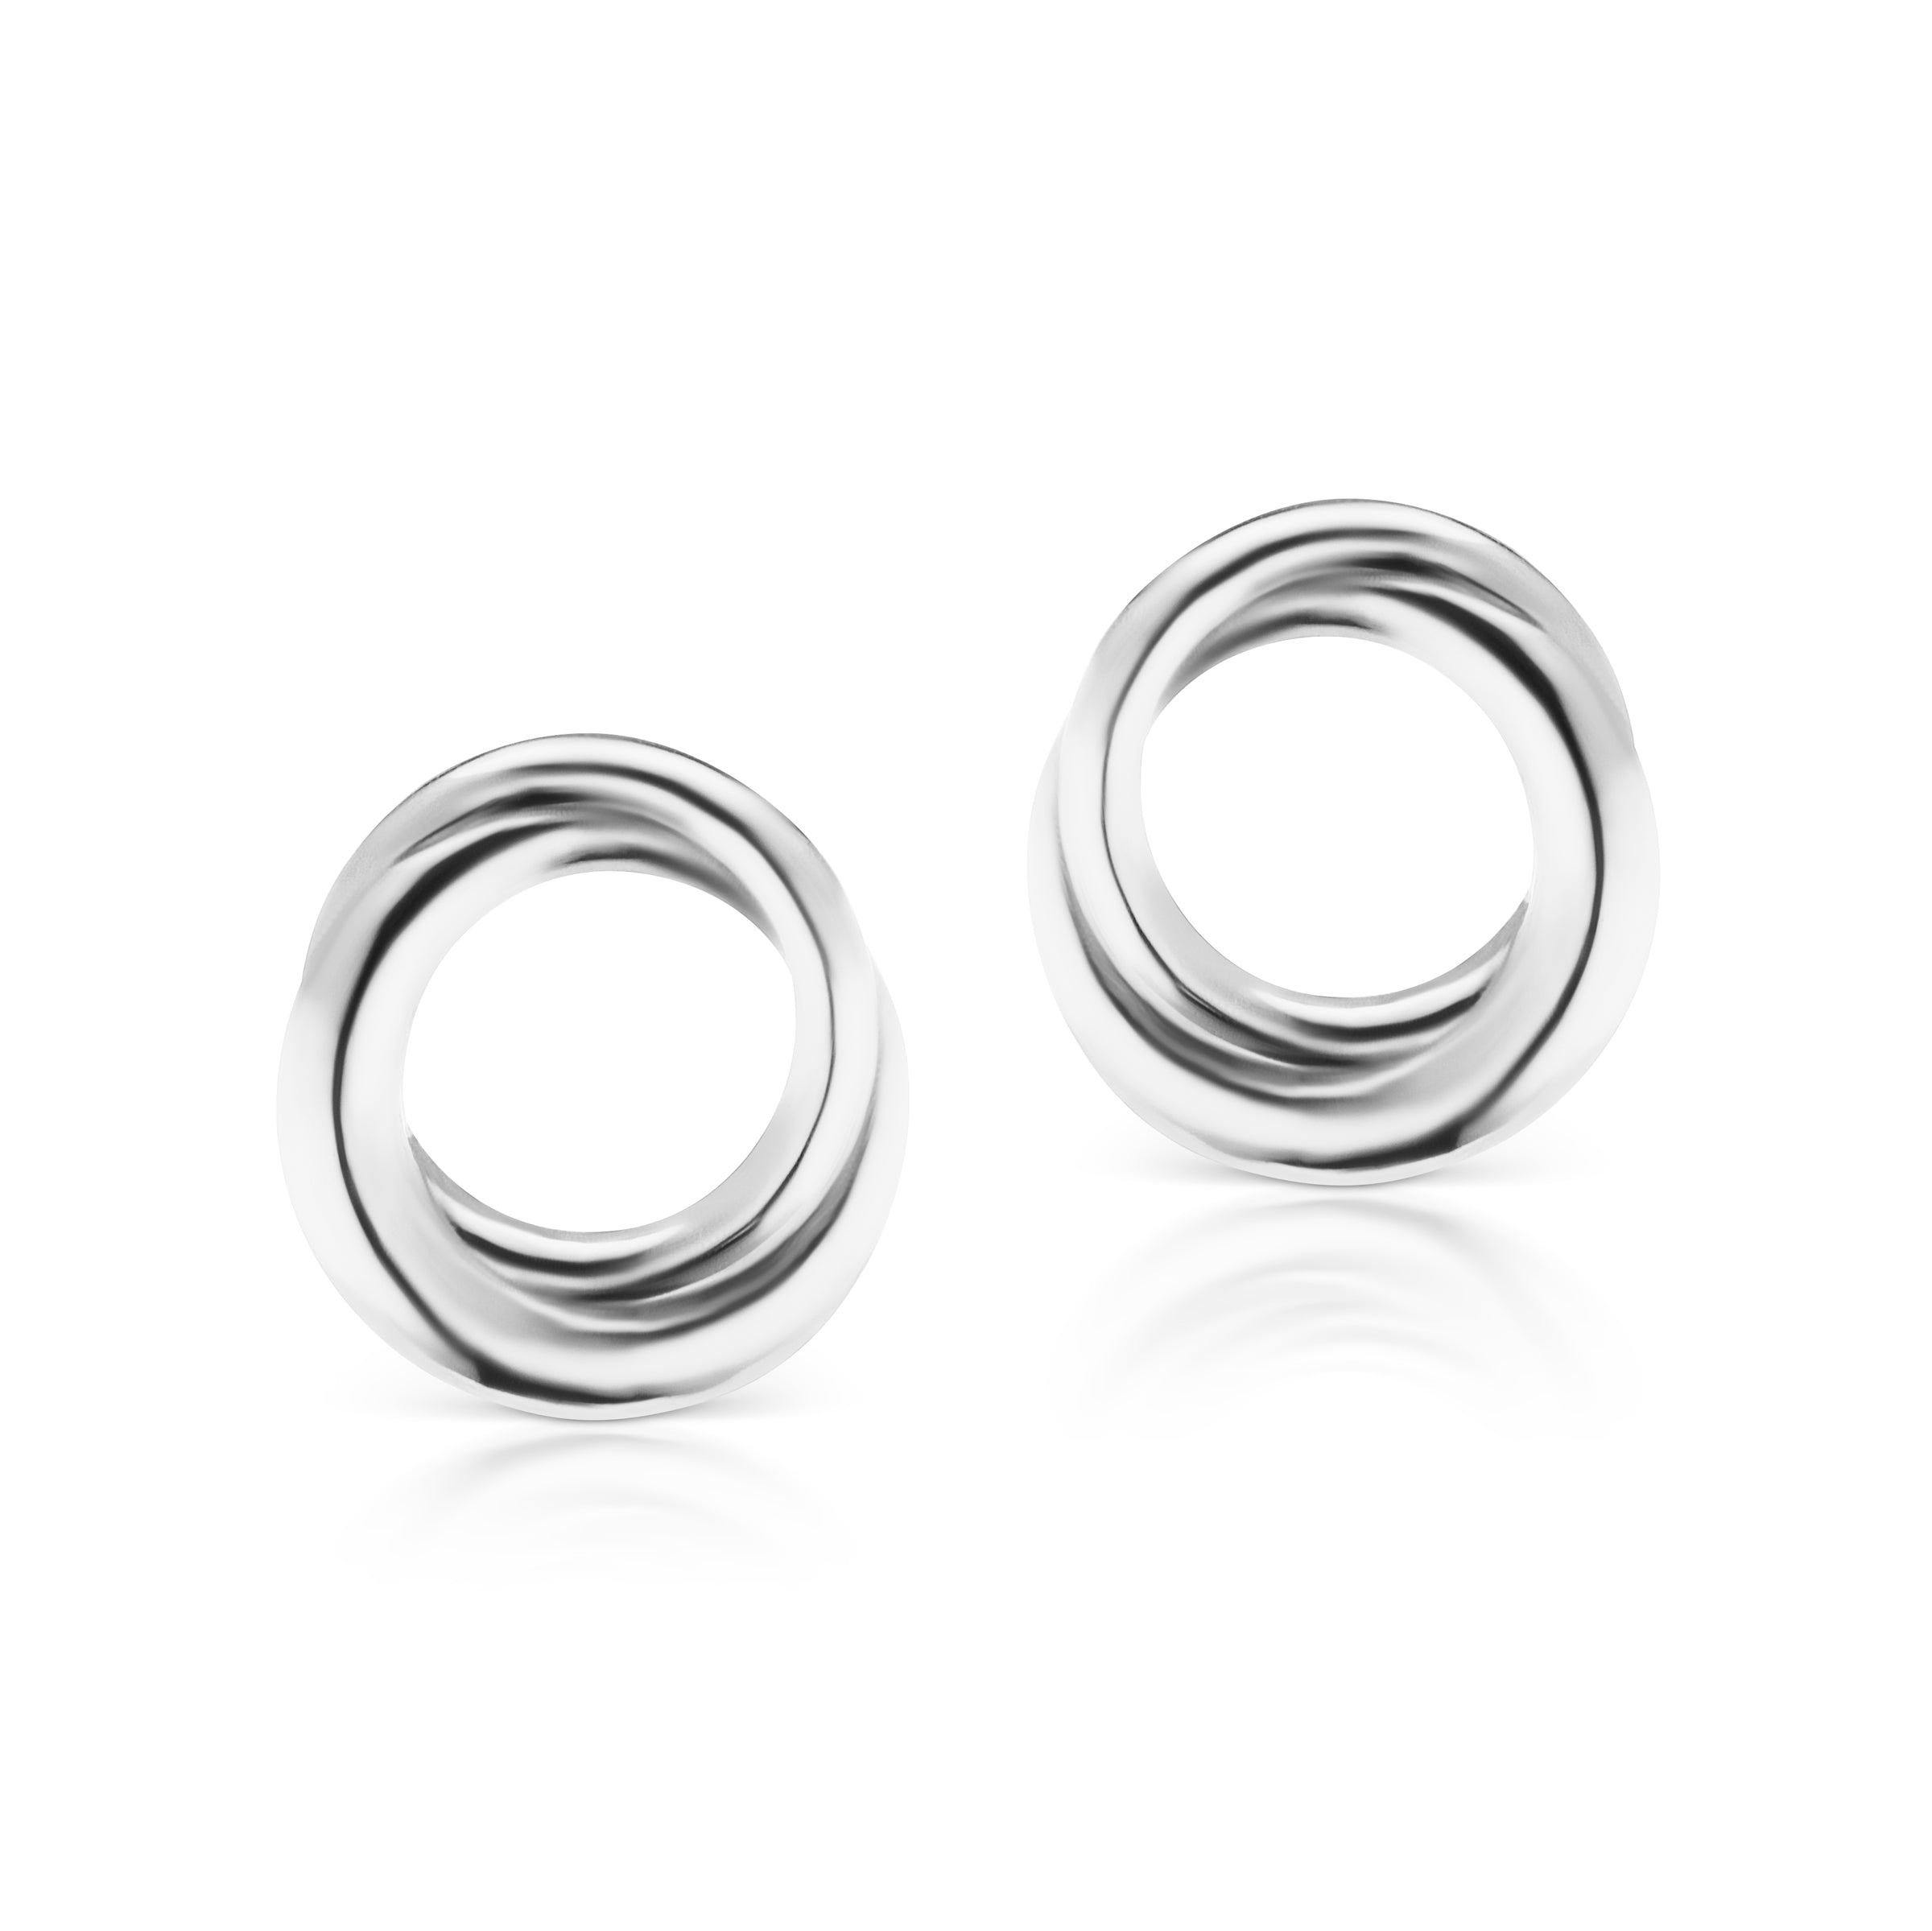 The Silver Encircle Studs